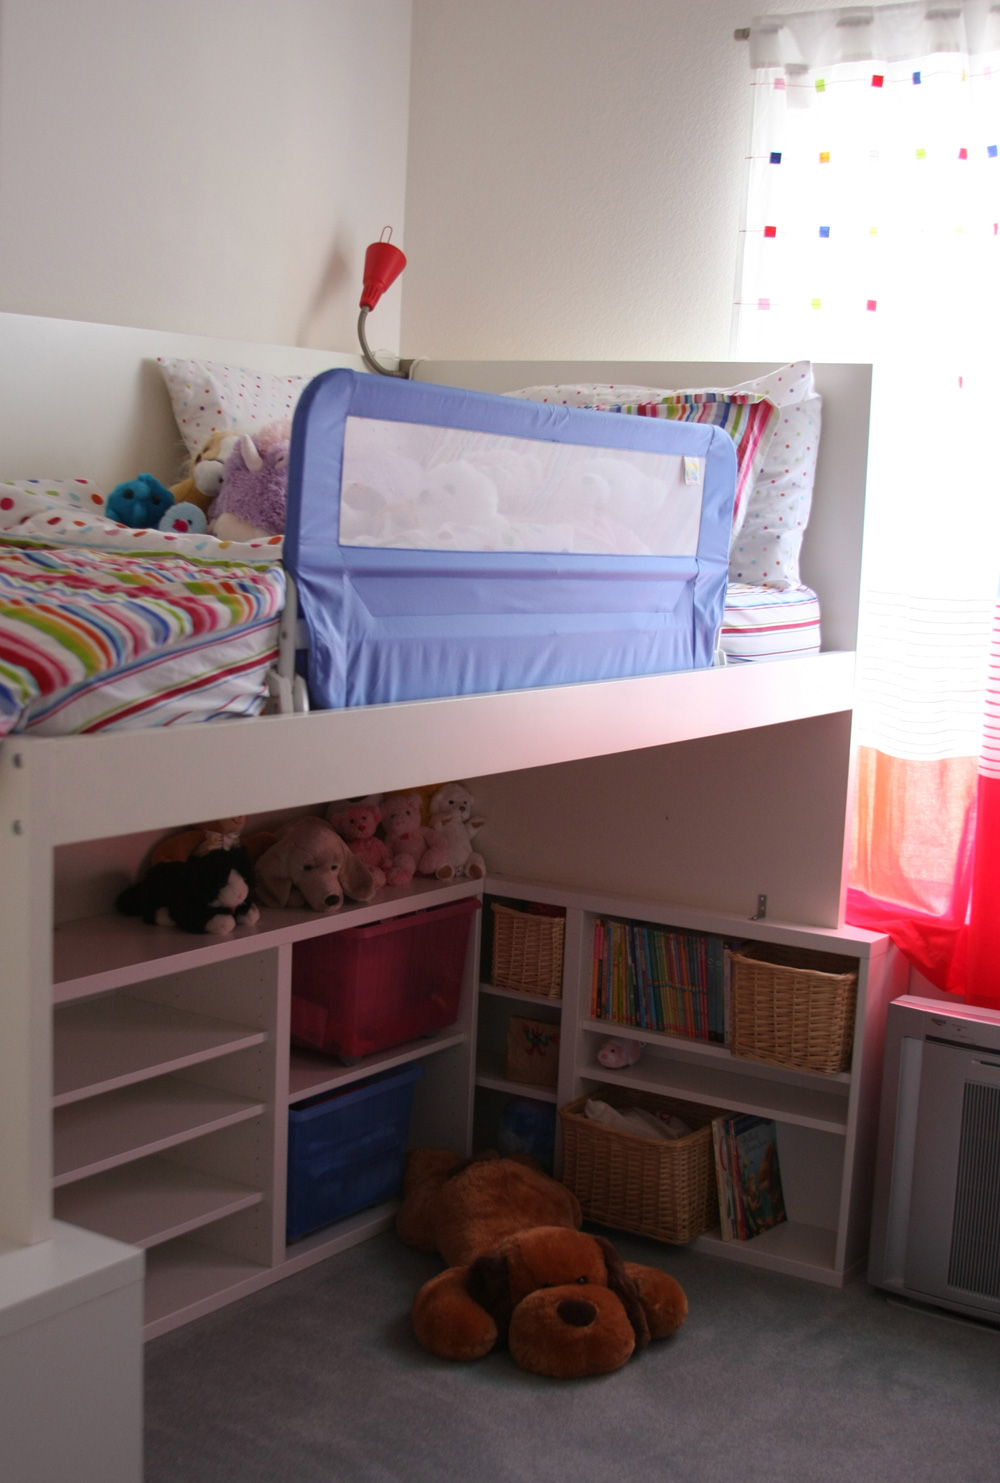 Ikea kids room on pinterest ikea ikea hackers and ikea hacks - Ikea bunk bed room ideas ...